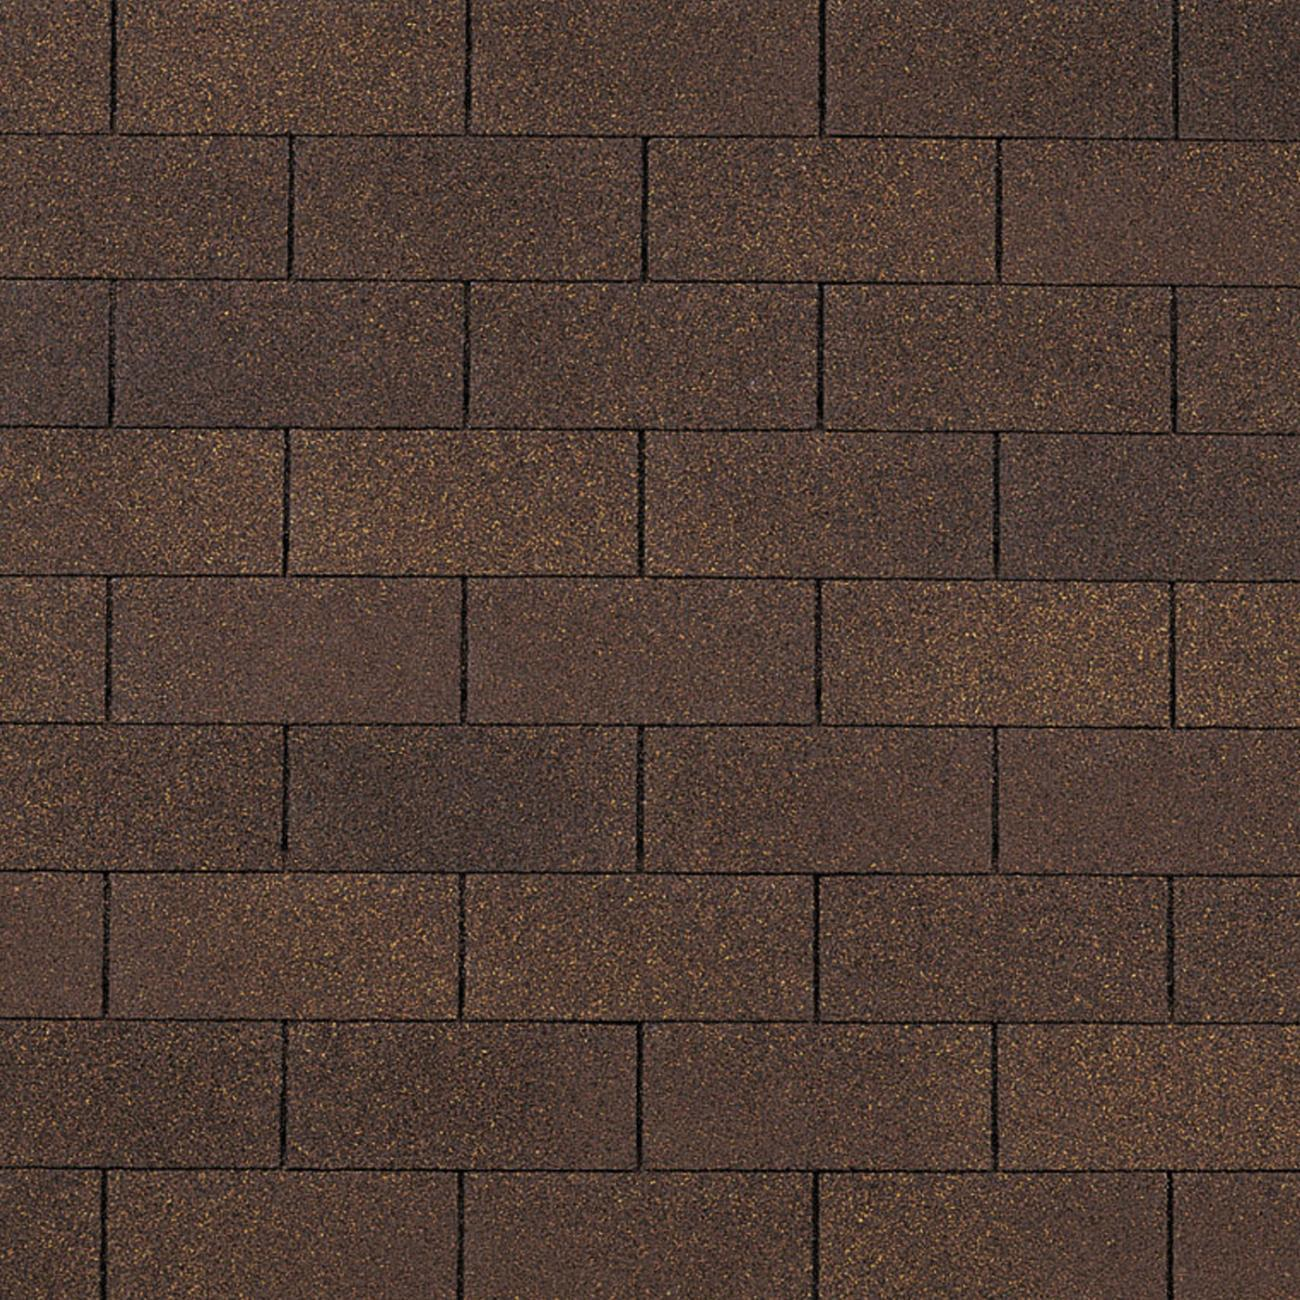 TEJA ASFÁLTICA CELTIC TOP SHINGLE BROWN 3.1 MT2